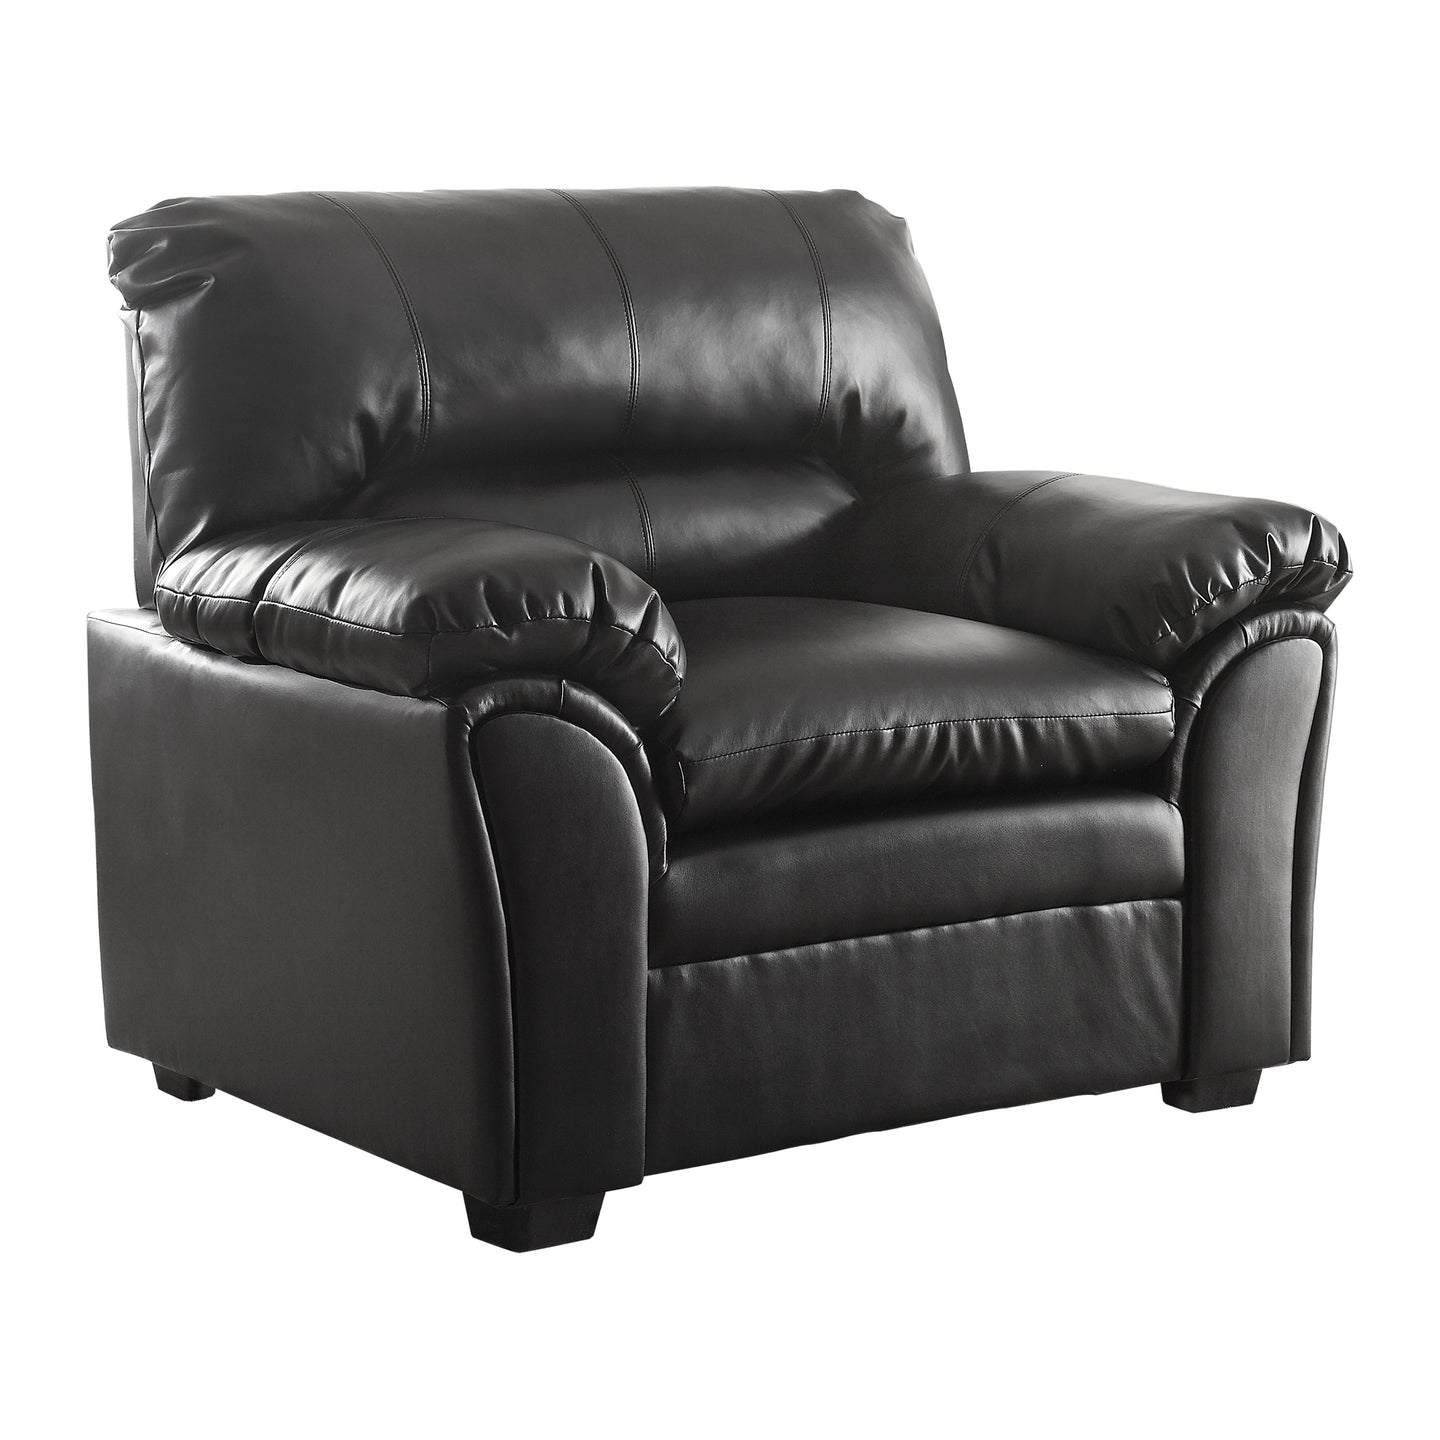 Homelegance Talon Black Bonded Leather Finish Chair